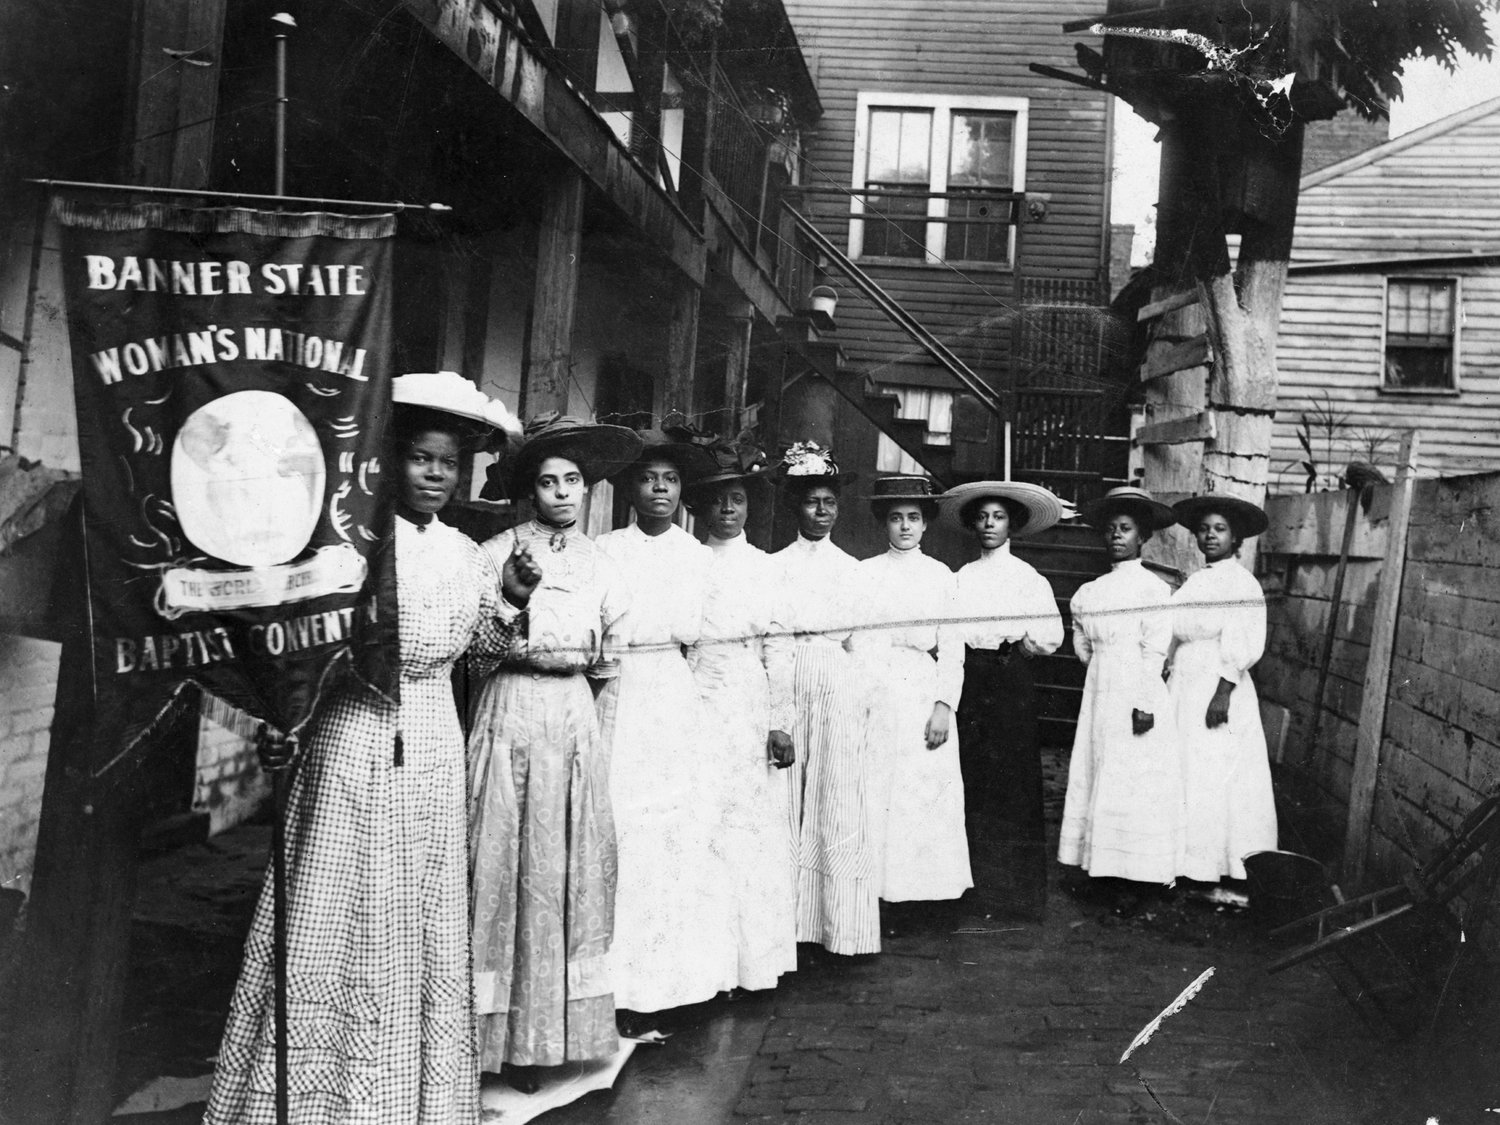 """Nannie Helen Burroughs, holding a banner reading, """"Banner State Woman's National Baptist Convention,"""" stands with eight otherAfrican-American women, photographed between 1905 and 1915. Burroughs (1879-1961) was an activist, educator and suffragette who fought for African American and women's rights."""